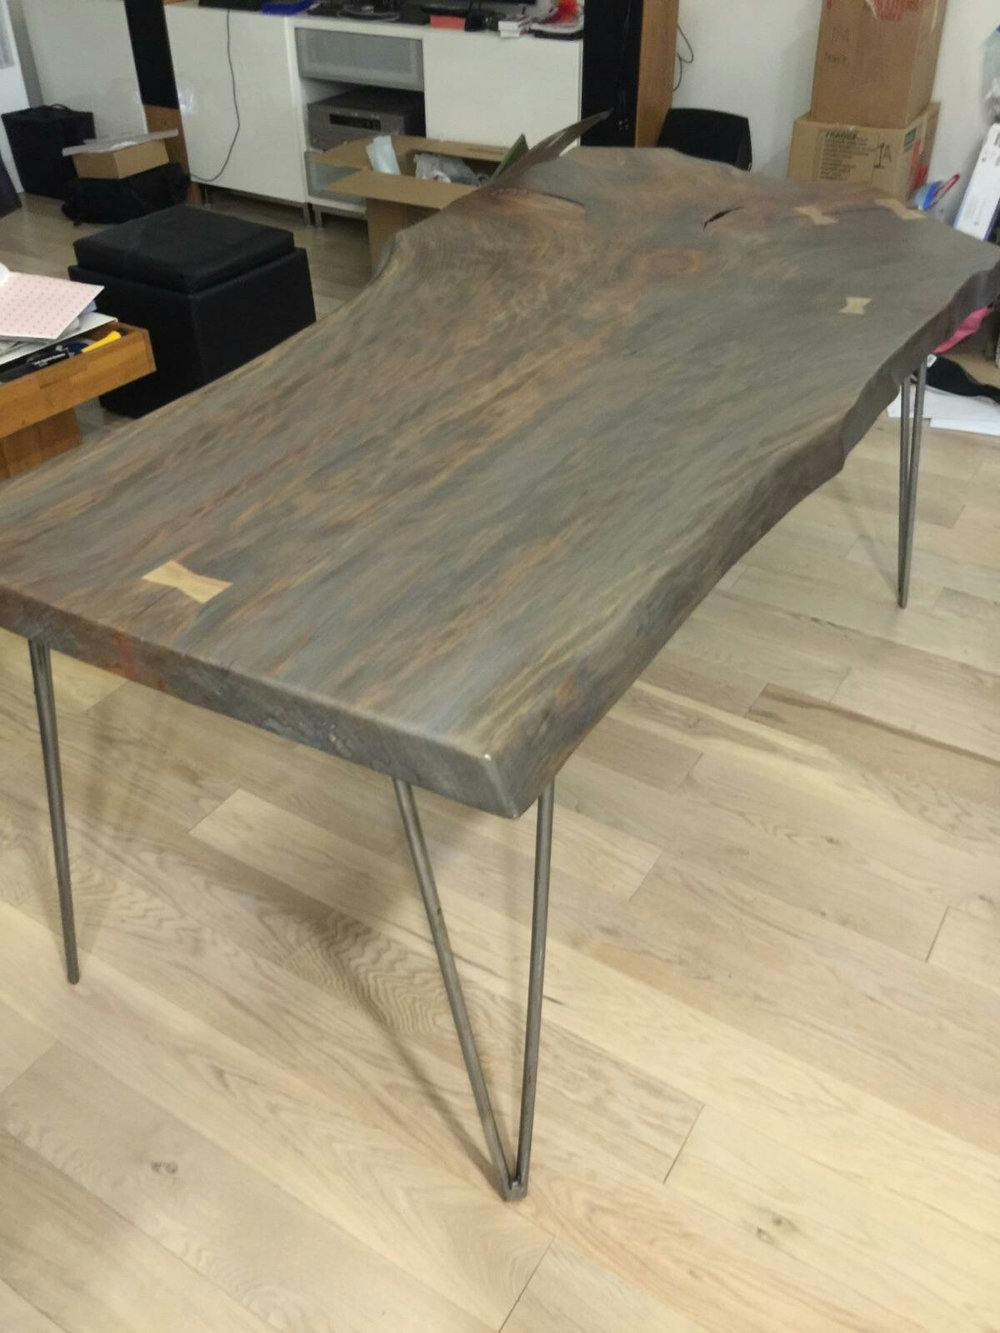 Gray-washed Sycamore table